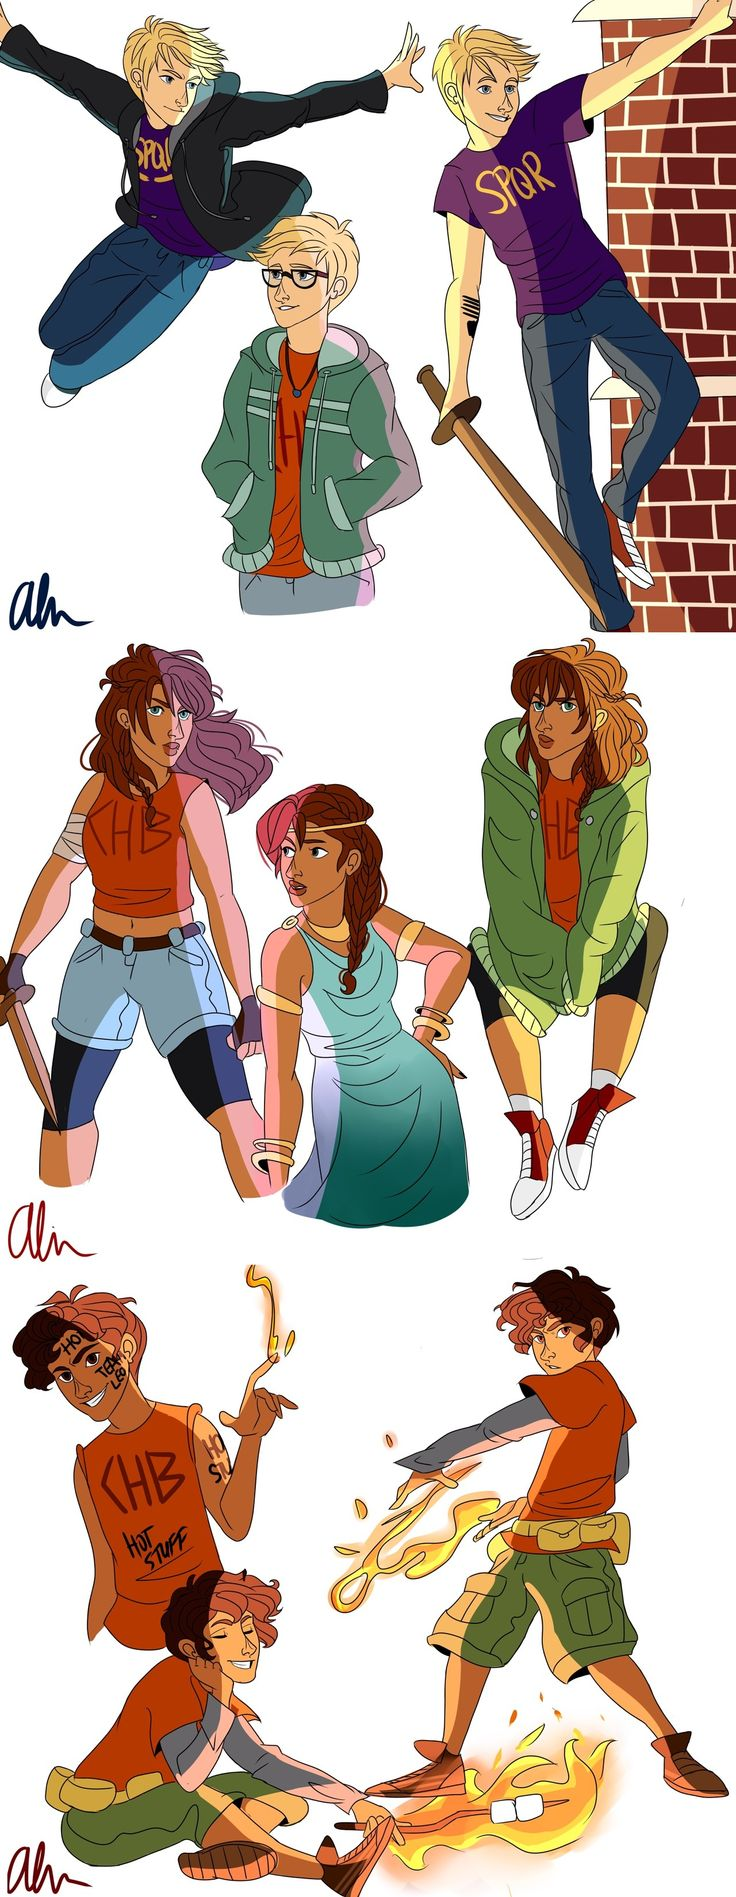 Jason Grace, Piper McLean & Leo Valdez | art by chubunu (Artwork)